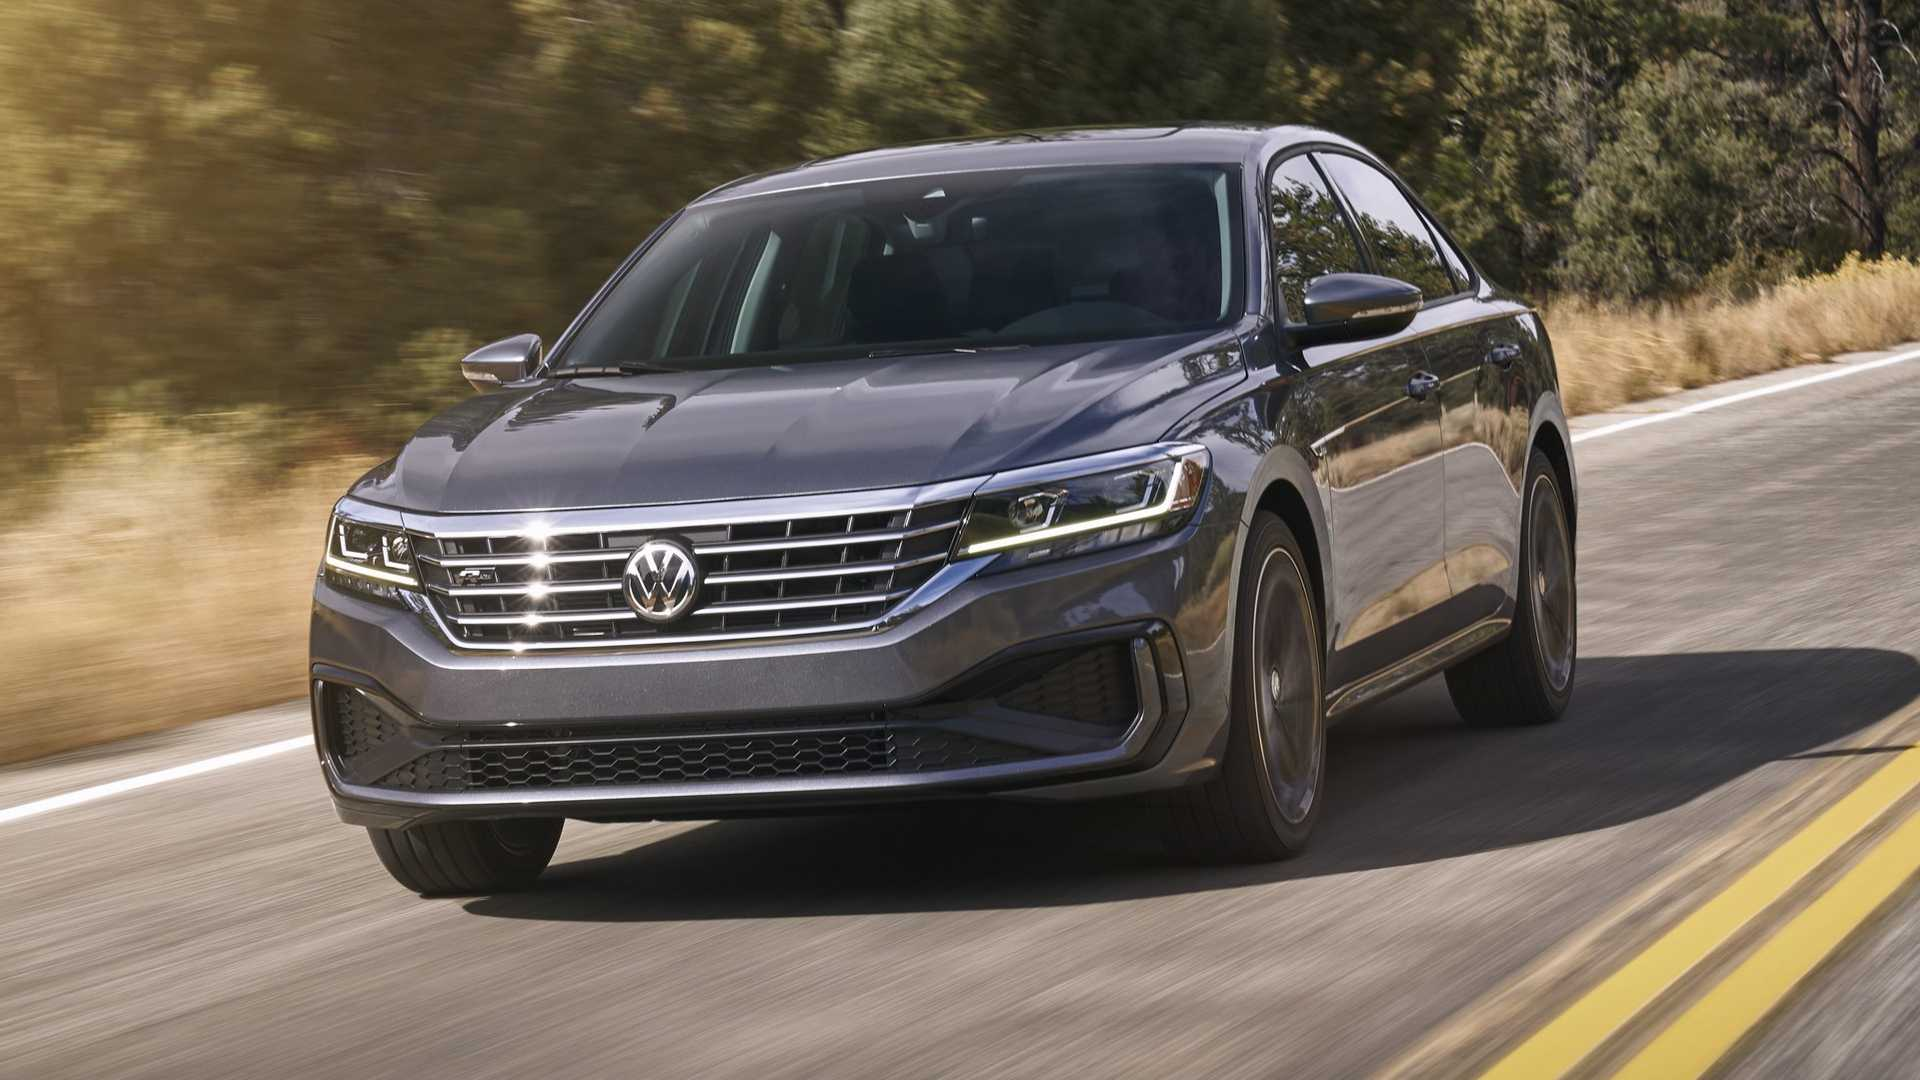 35 All New 2019 Vw Cc Configurations